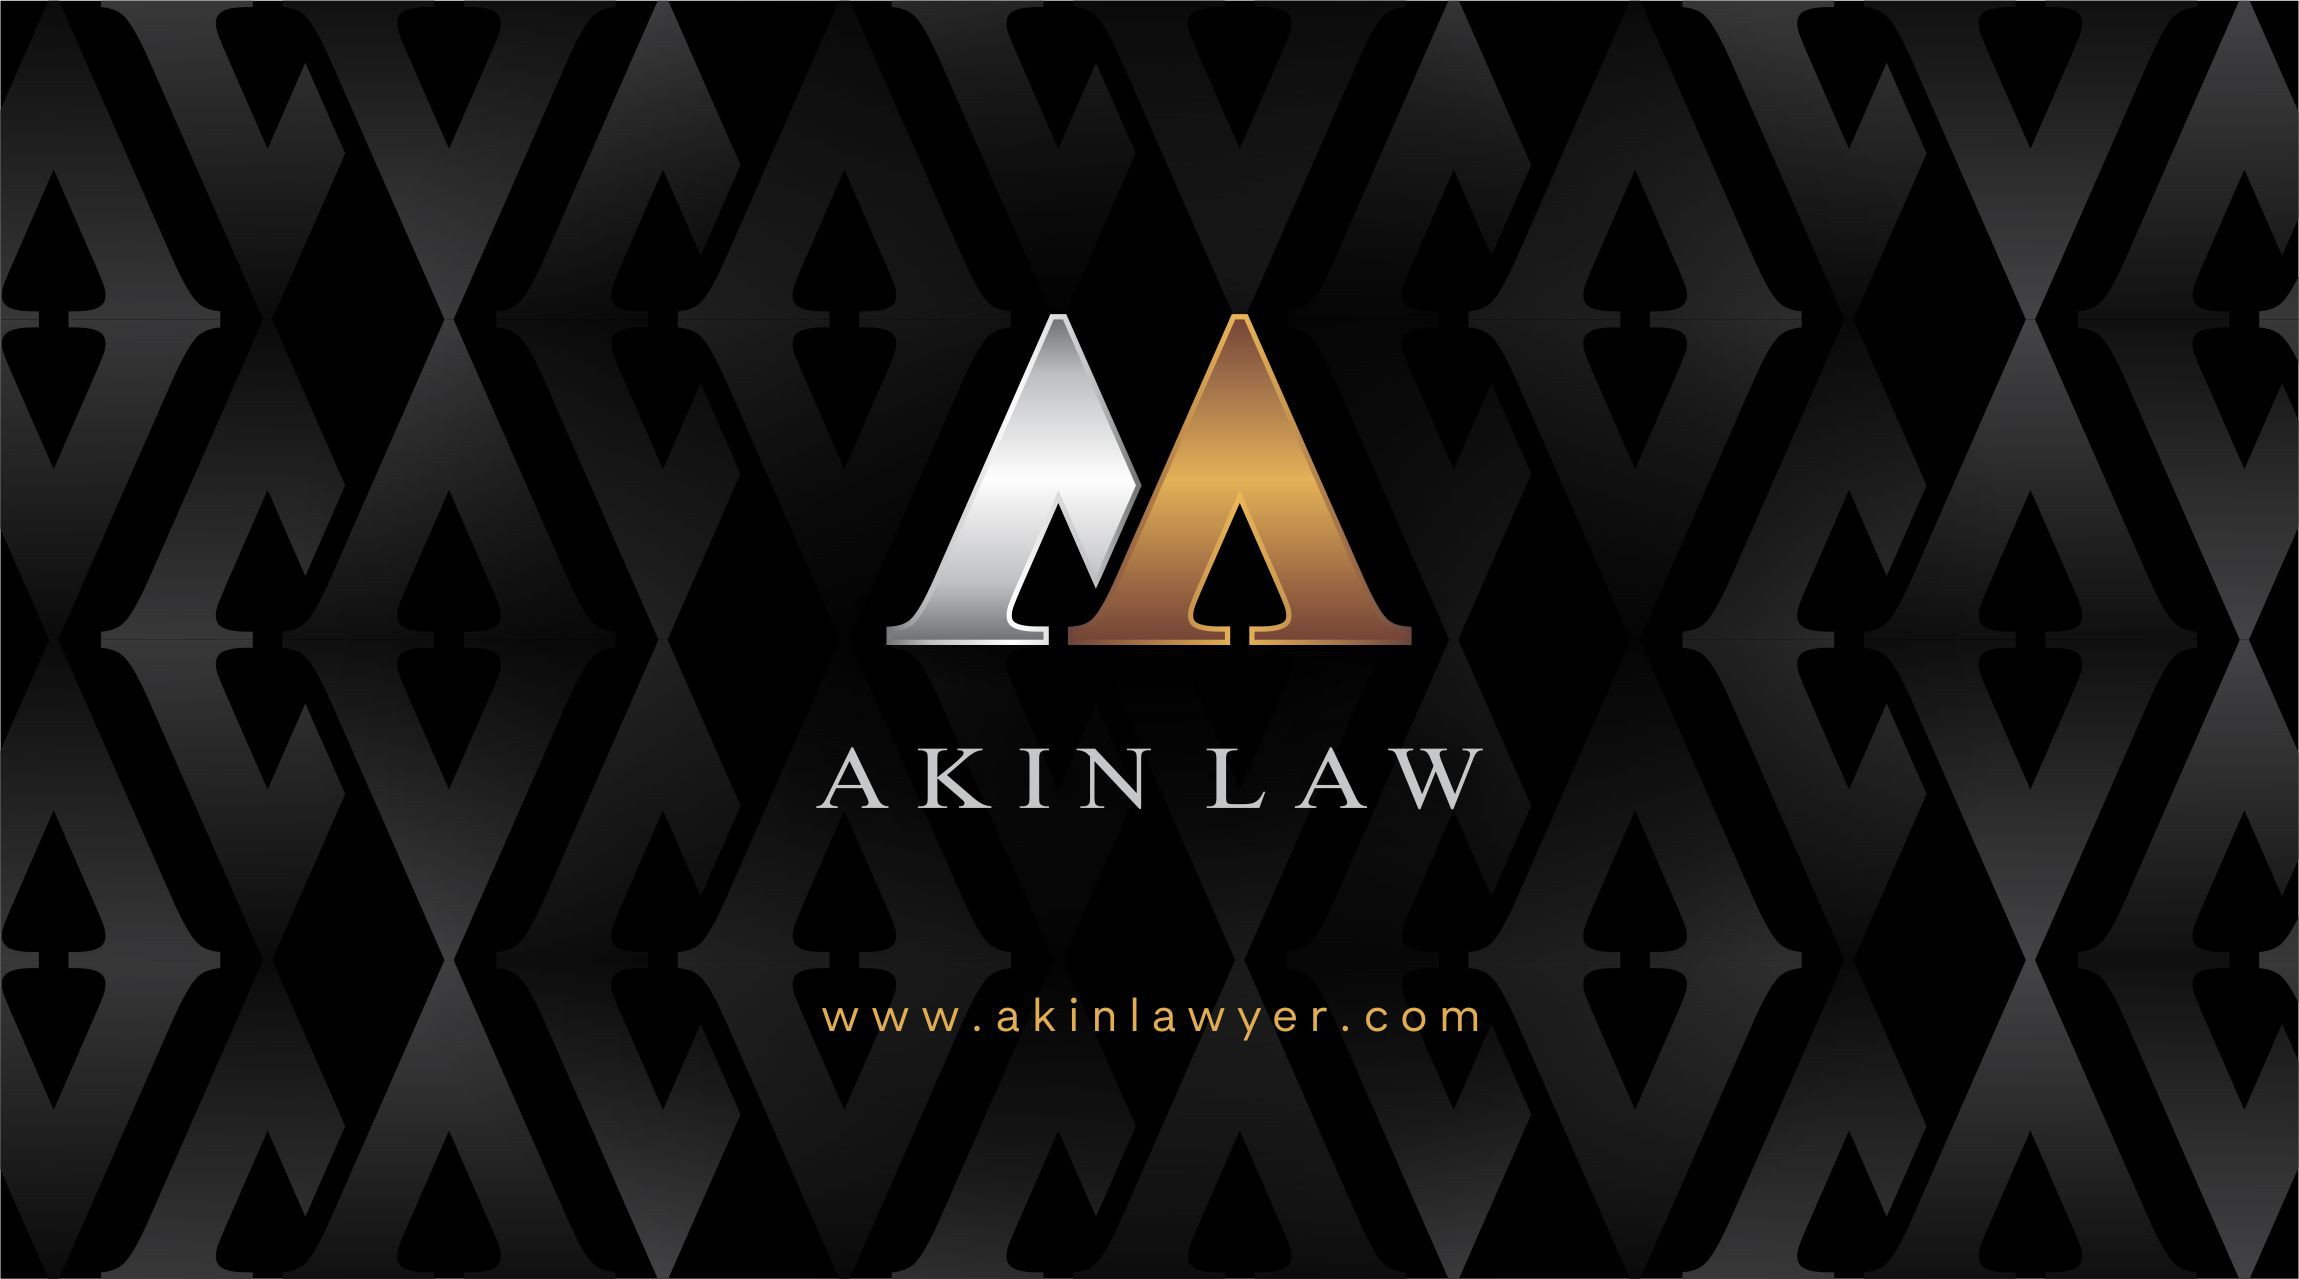 Business Cards - M. Akin Law